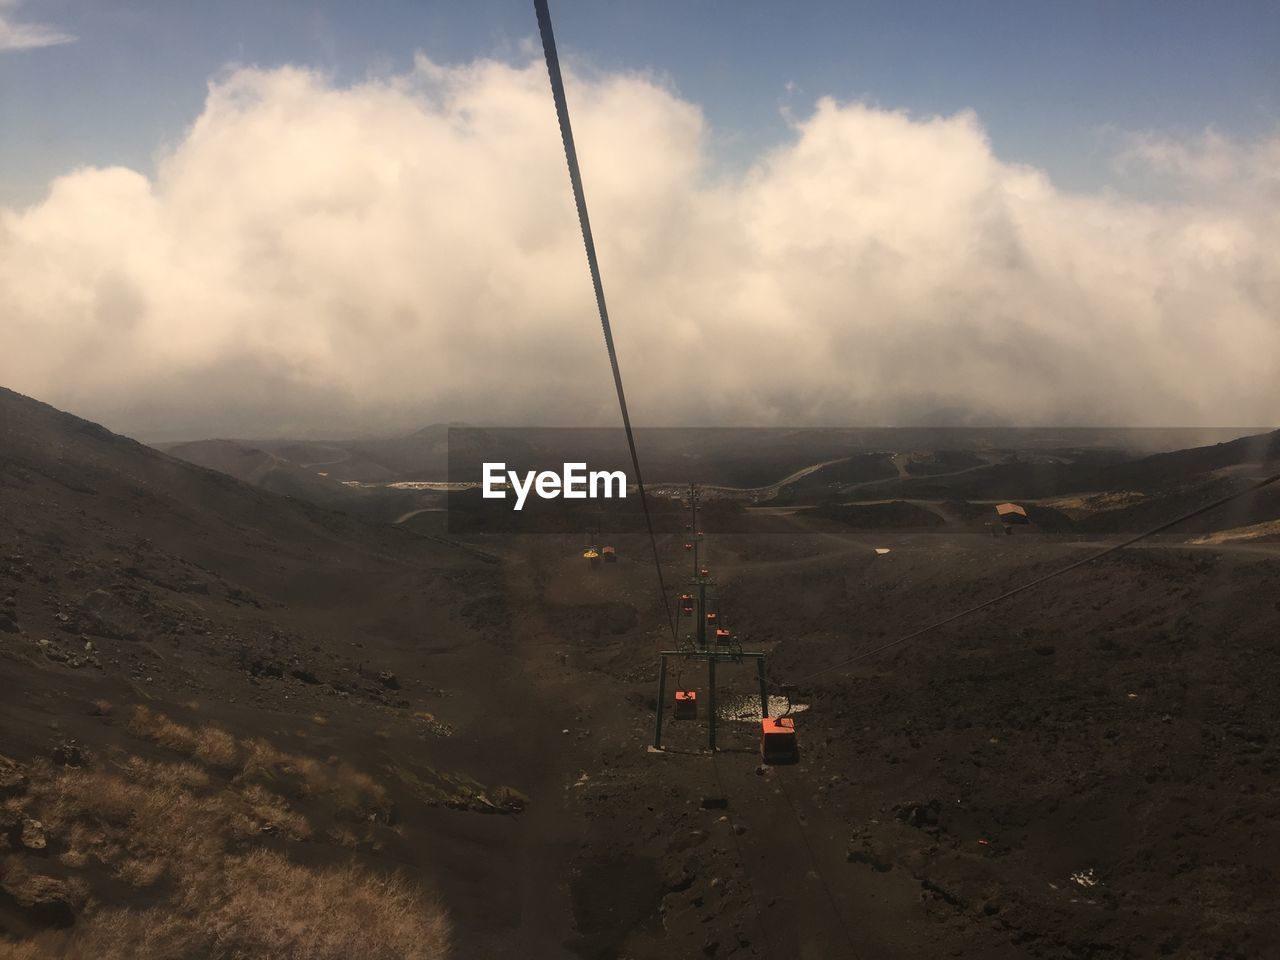 cloud - sky, cable car, sky, environment, transportation, beauty in nature, landscape, mountain, overhead cable car, nature, scenics - nature, no people, mode of transportation, tranquil scene, non-urban scene, ski lift, tranquility, day, cable, outdoors